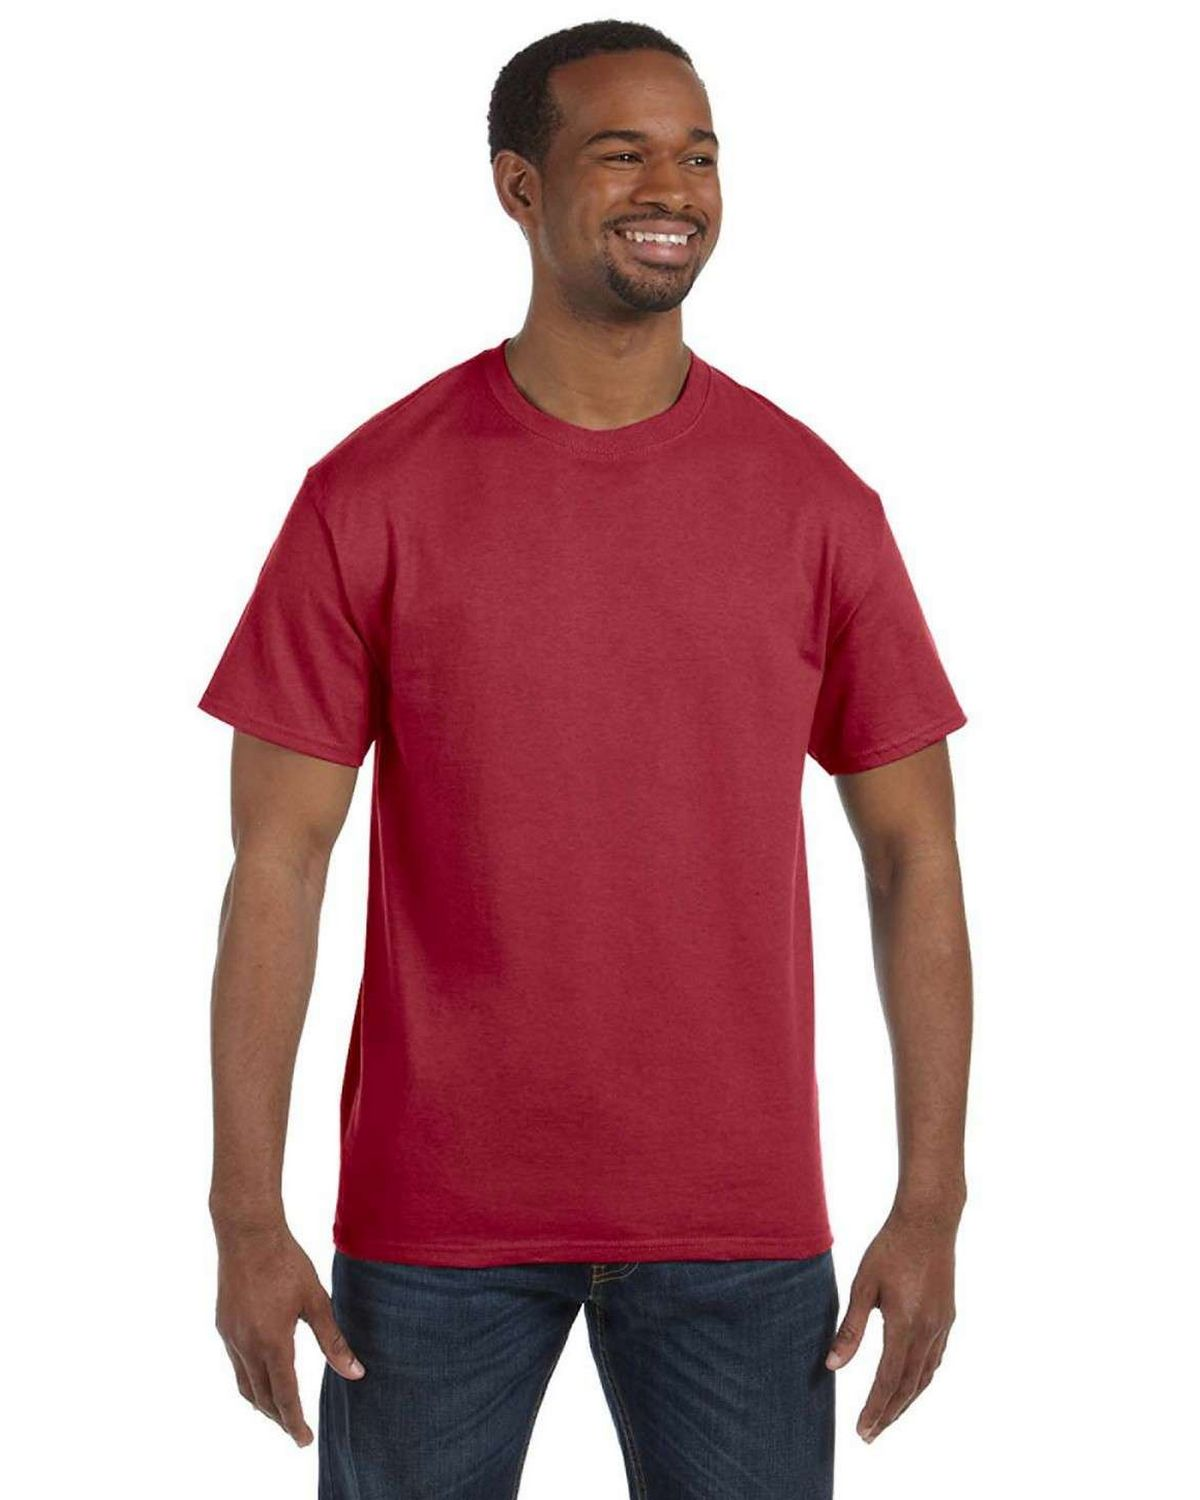 Jerzees 29 50/50 Adult Short-Sleeve Tee - Crimson - S 29